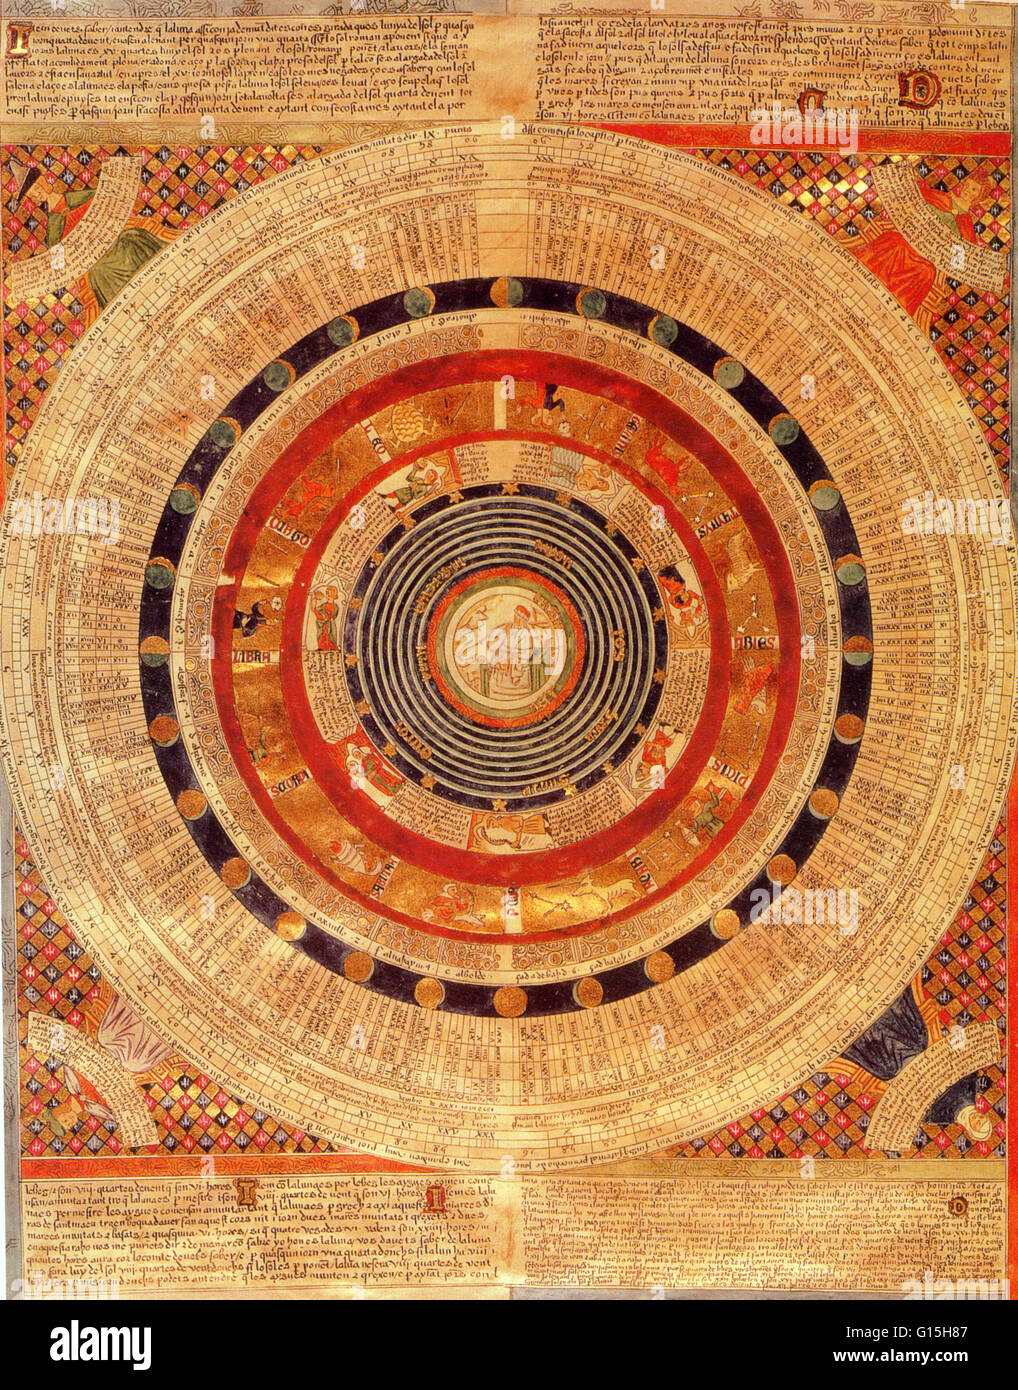 The Catalan Atlas, is the finest work to come from the Majorcan cartographic school of the fourteenth century. Most probably produced in 1375 the date that appears on the perpetual calendar shown here. It was produced by the Majorcan cartographic school a Stock Photo